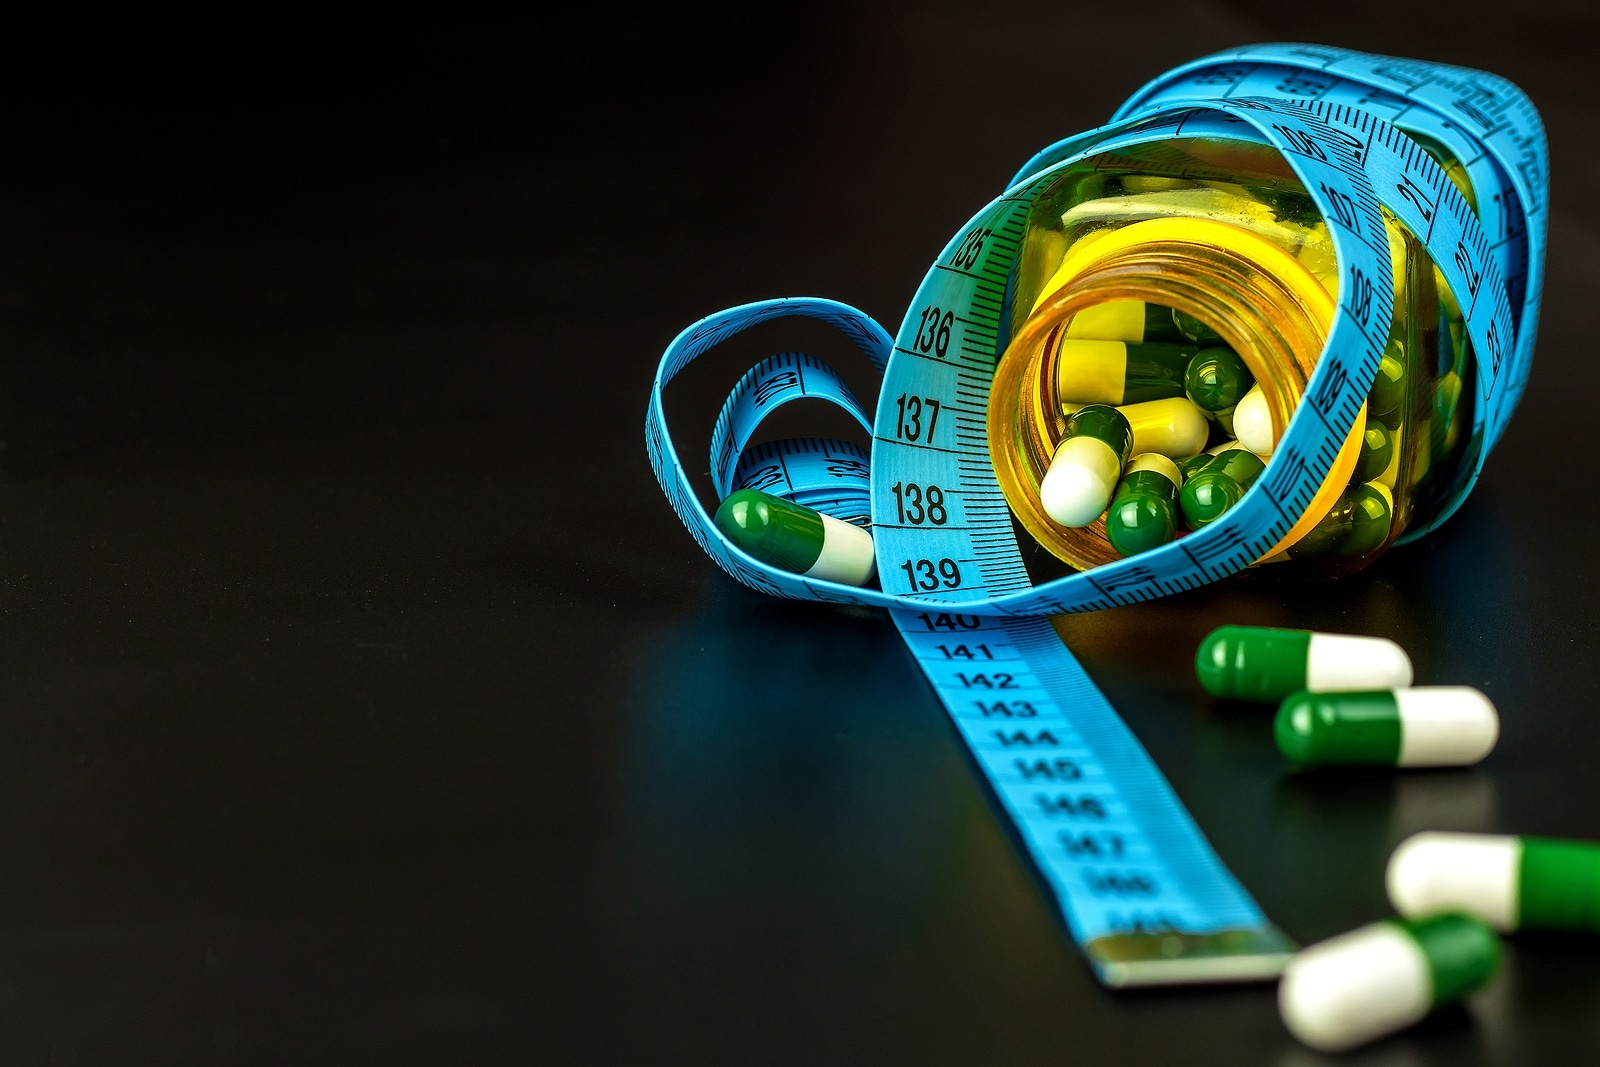 Pills With Measuring Tape. Weight Loss Concept.